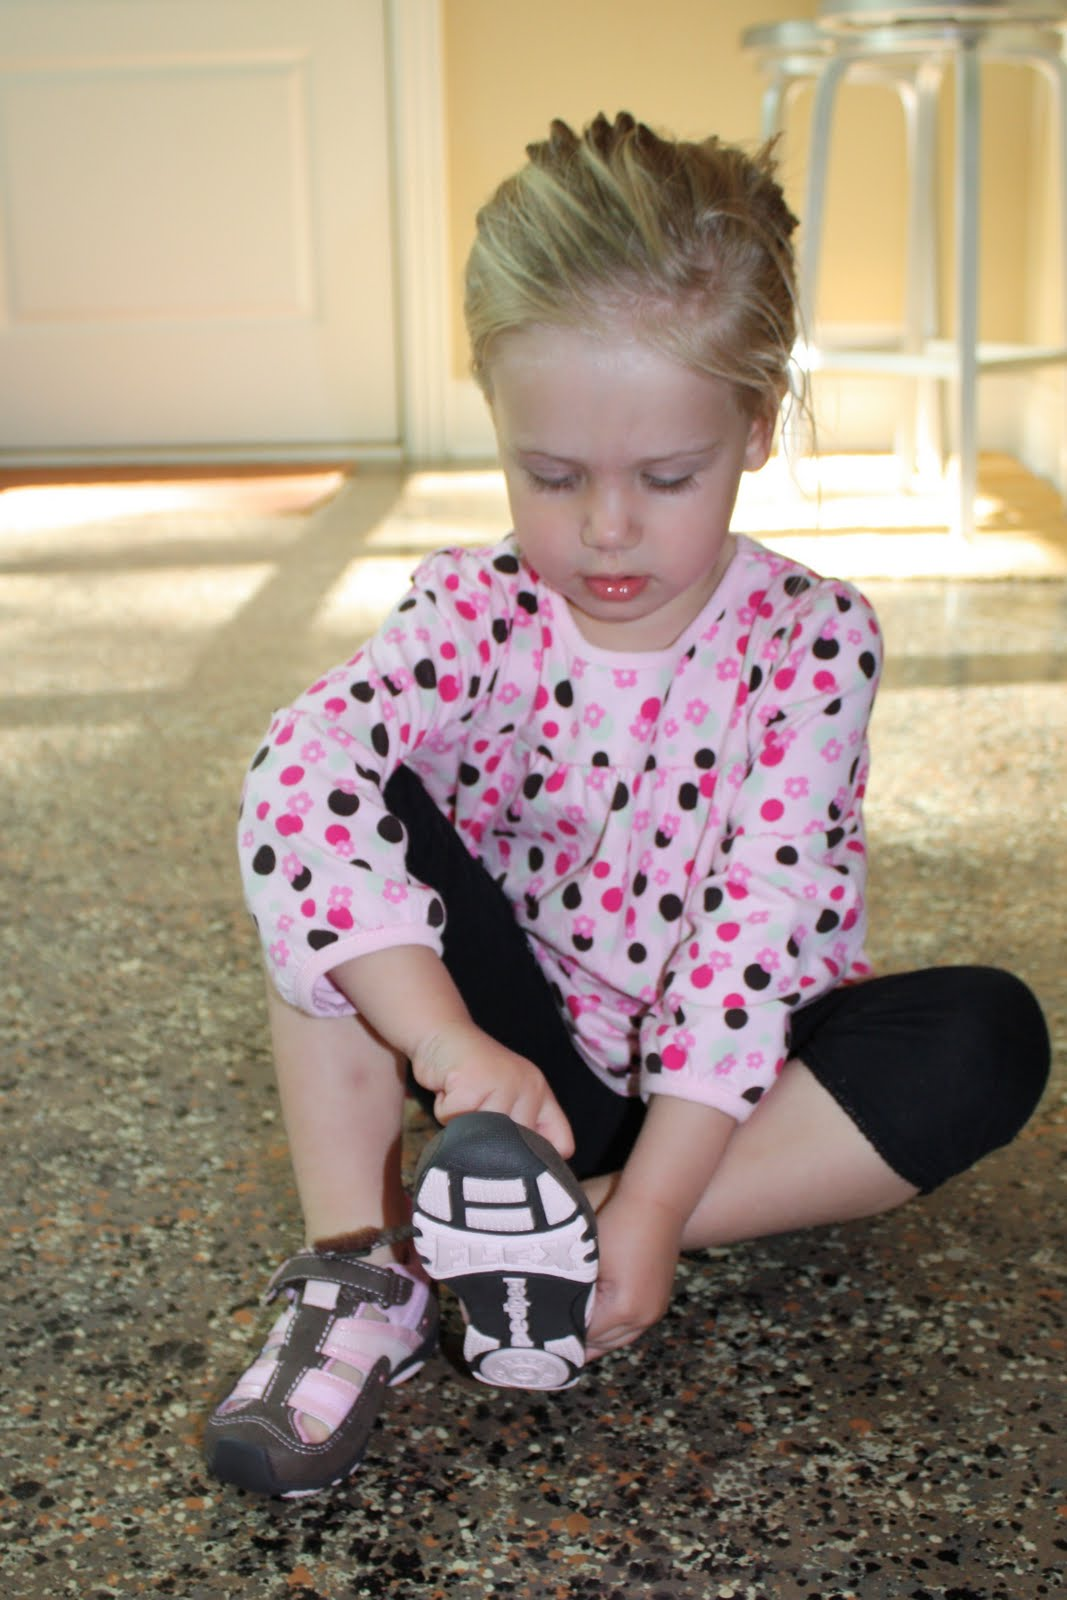 TinySoles Shoes Review and Giveaway